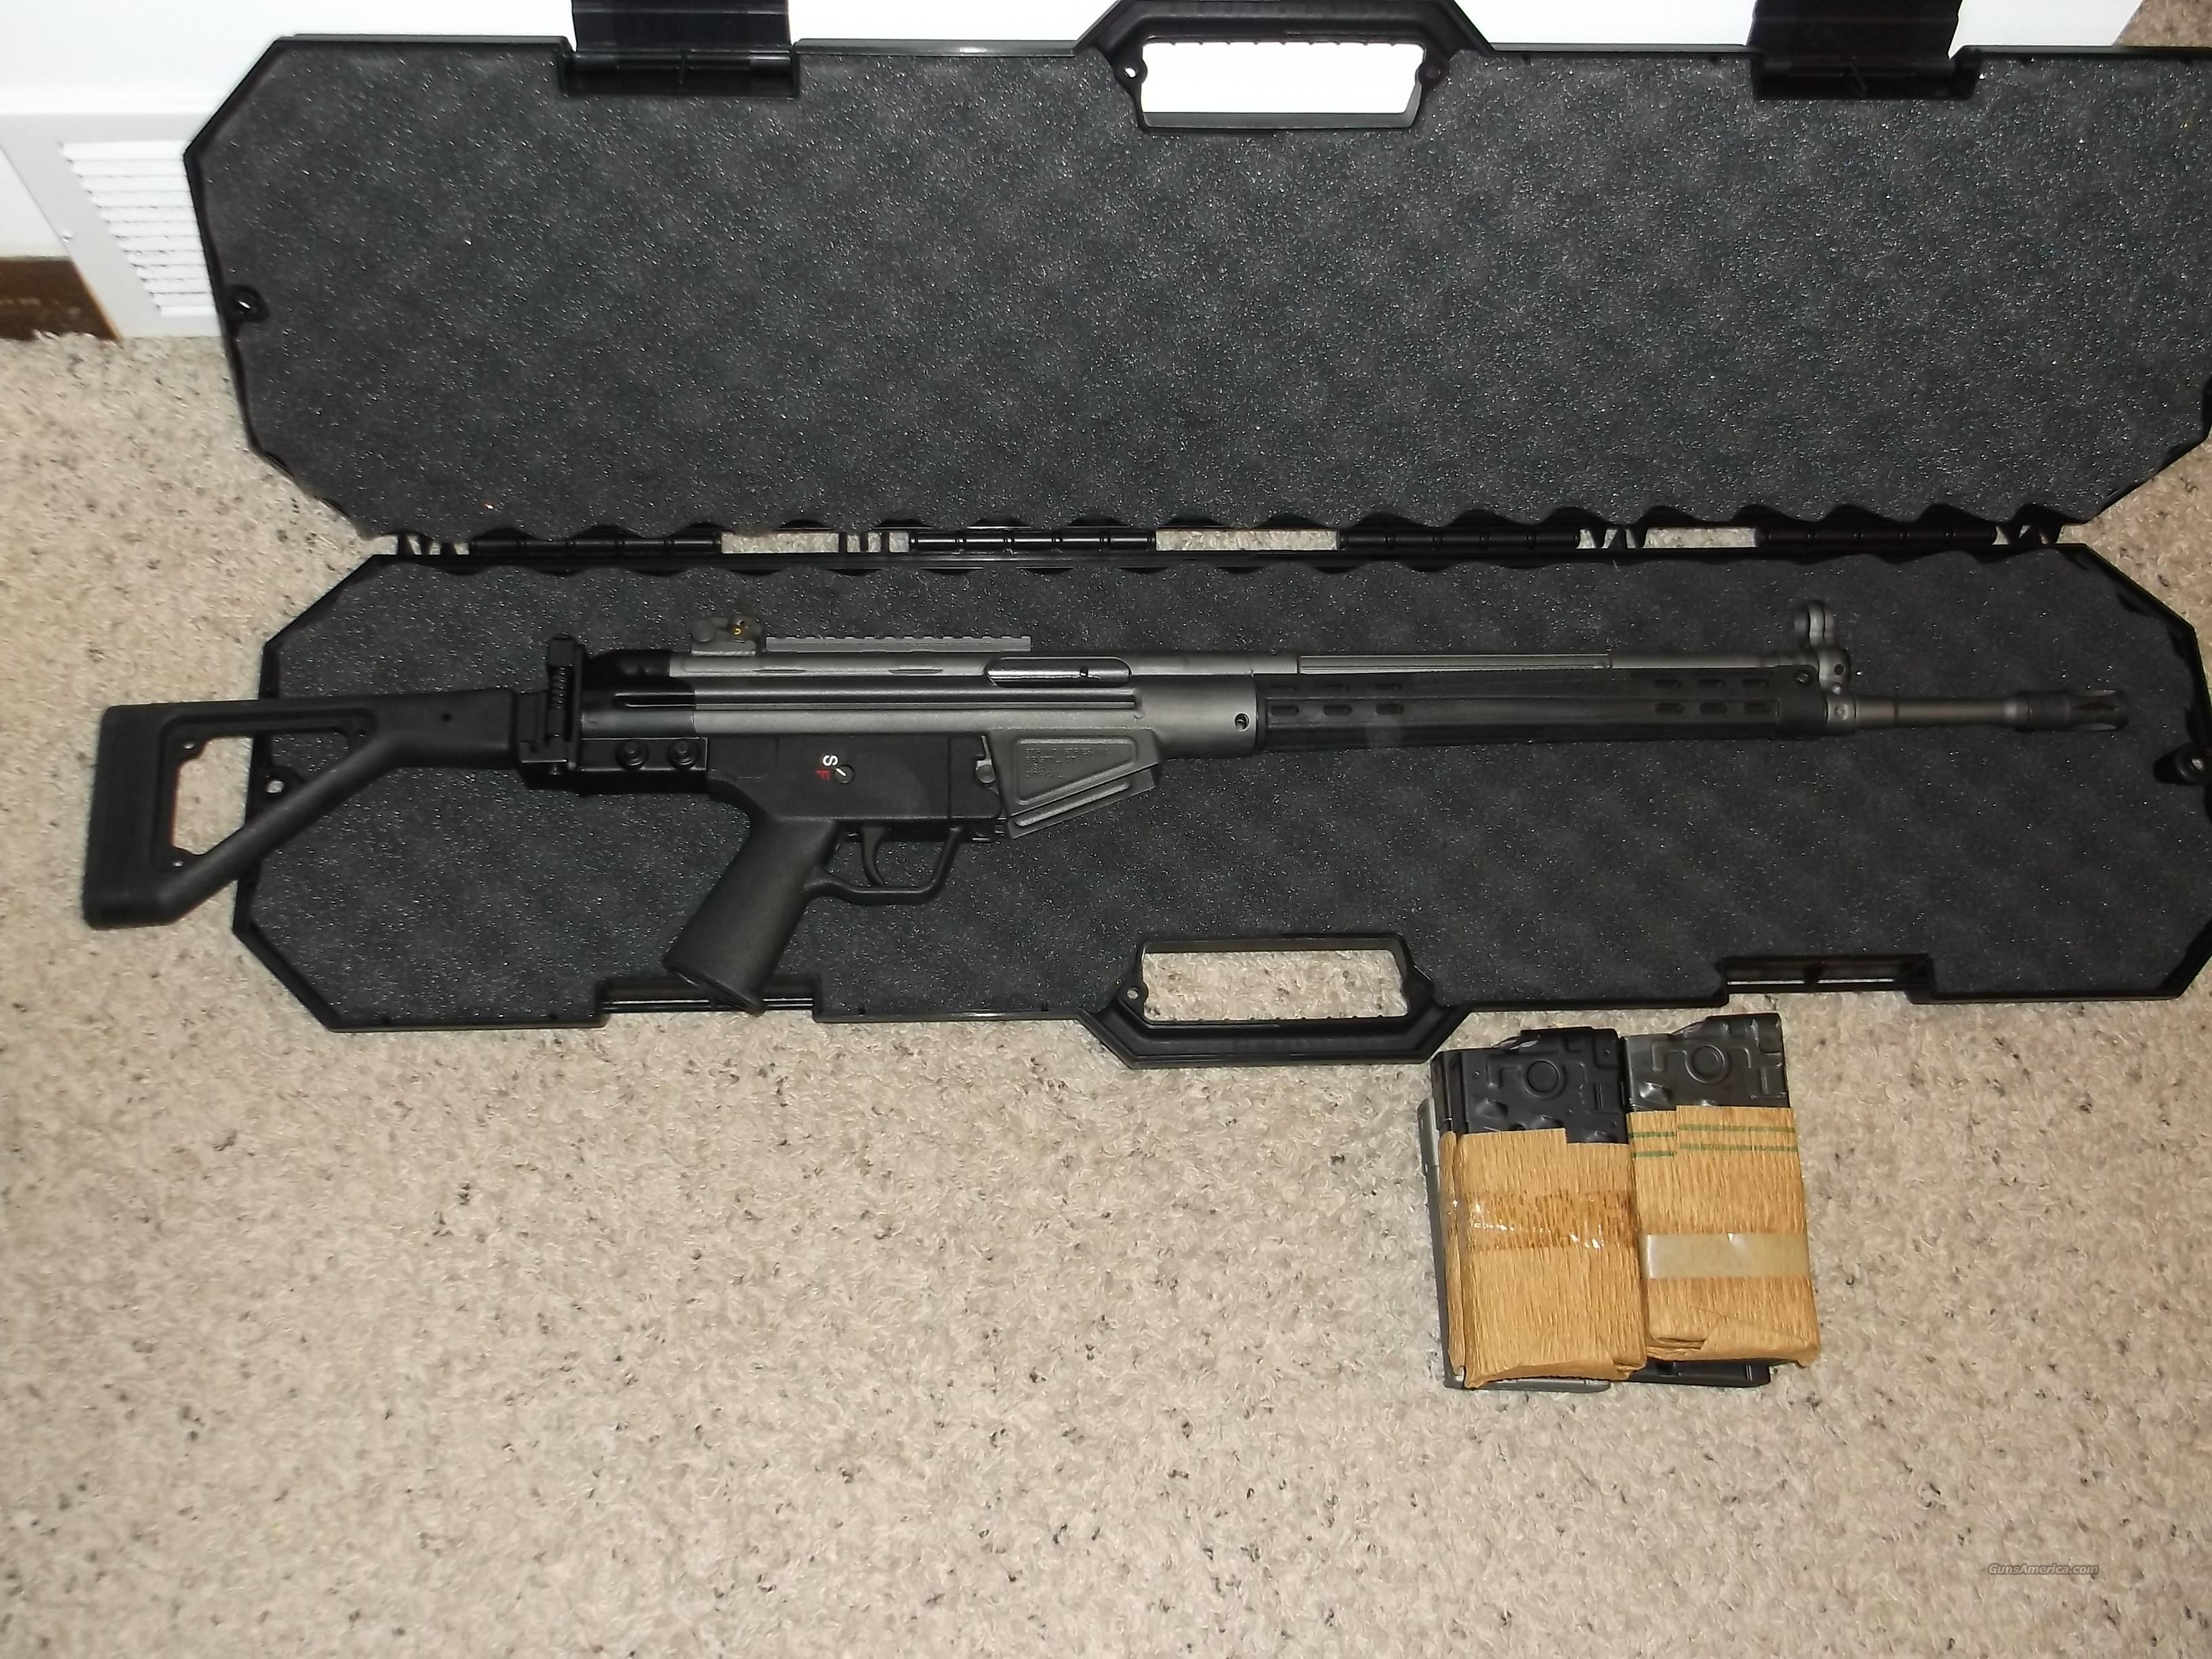 PTR SFR SIDE FOLDER FREE S/H EXTRA MAGS  Guns > Rifles > Heckler & Koch Rifles > Tactical